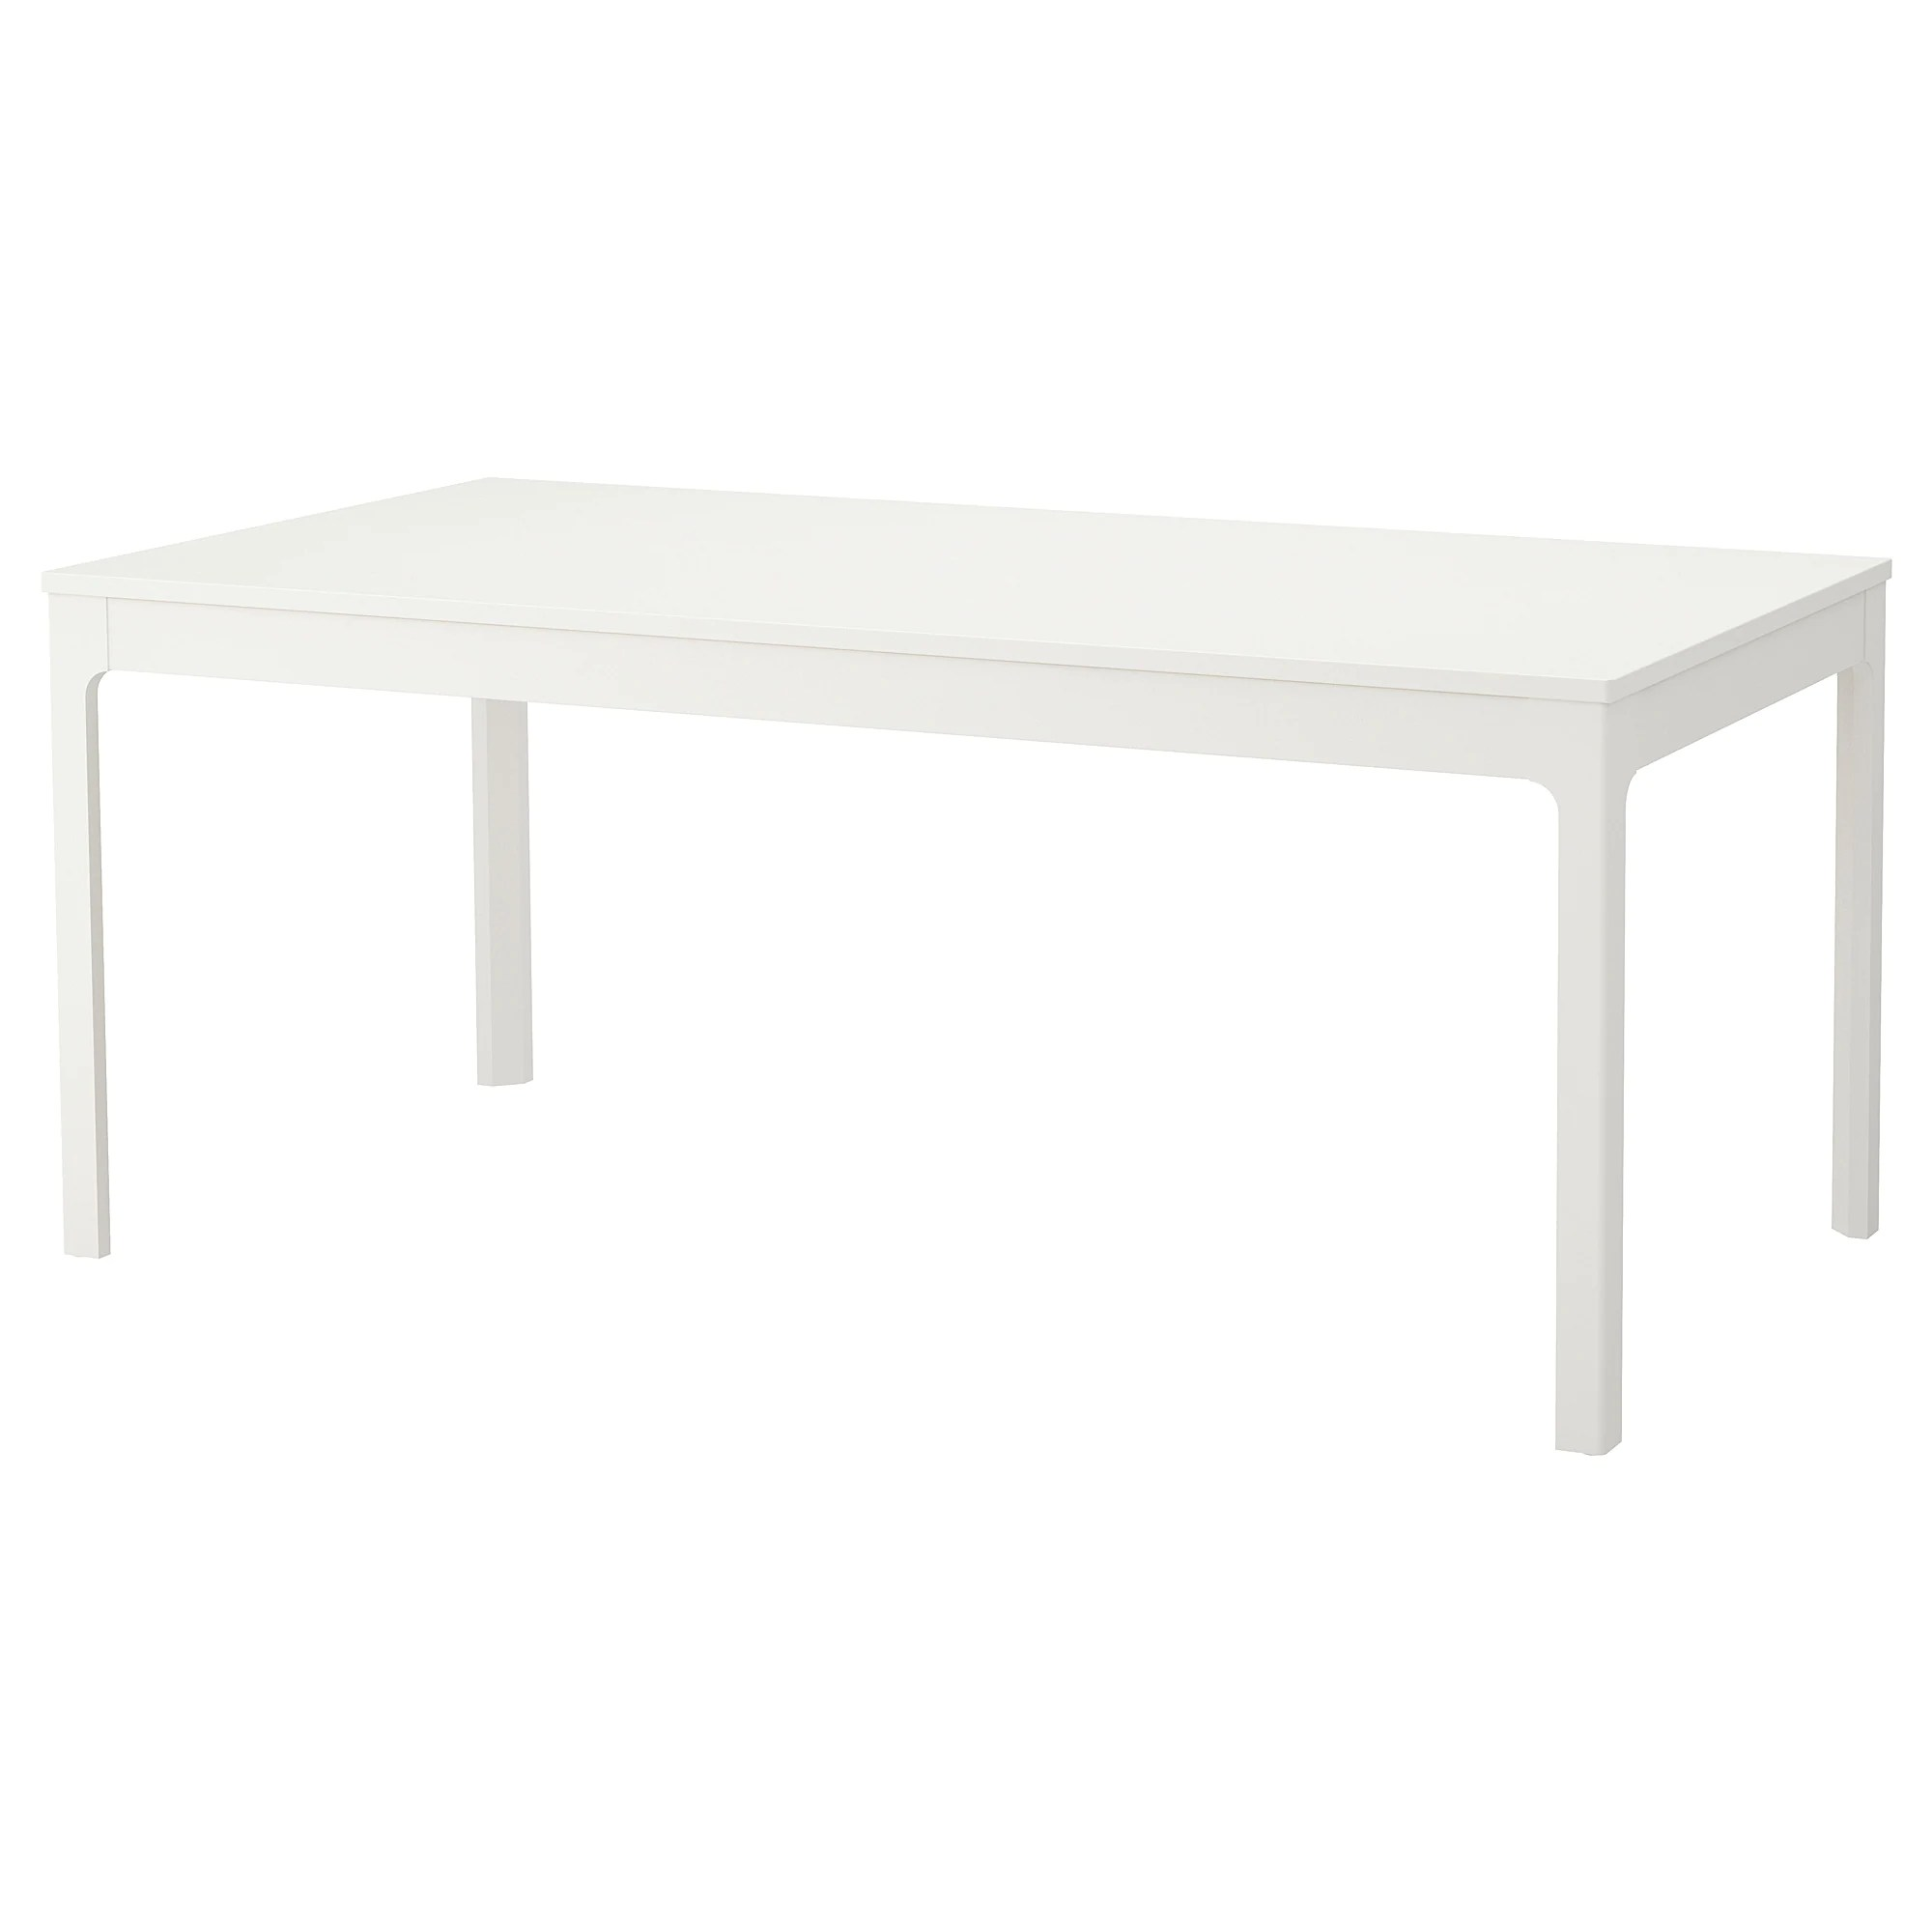 Table Ikea Blanche Ekedalen Extendable Table White